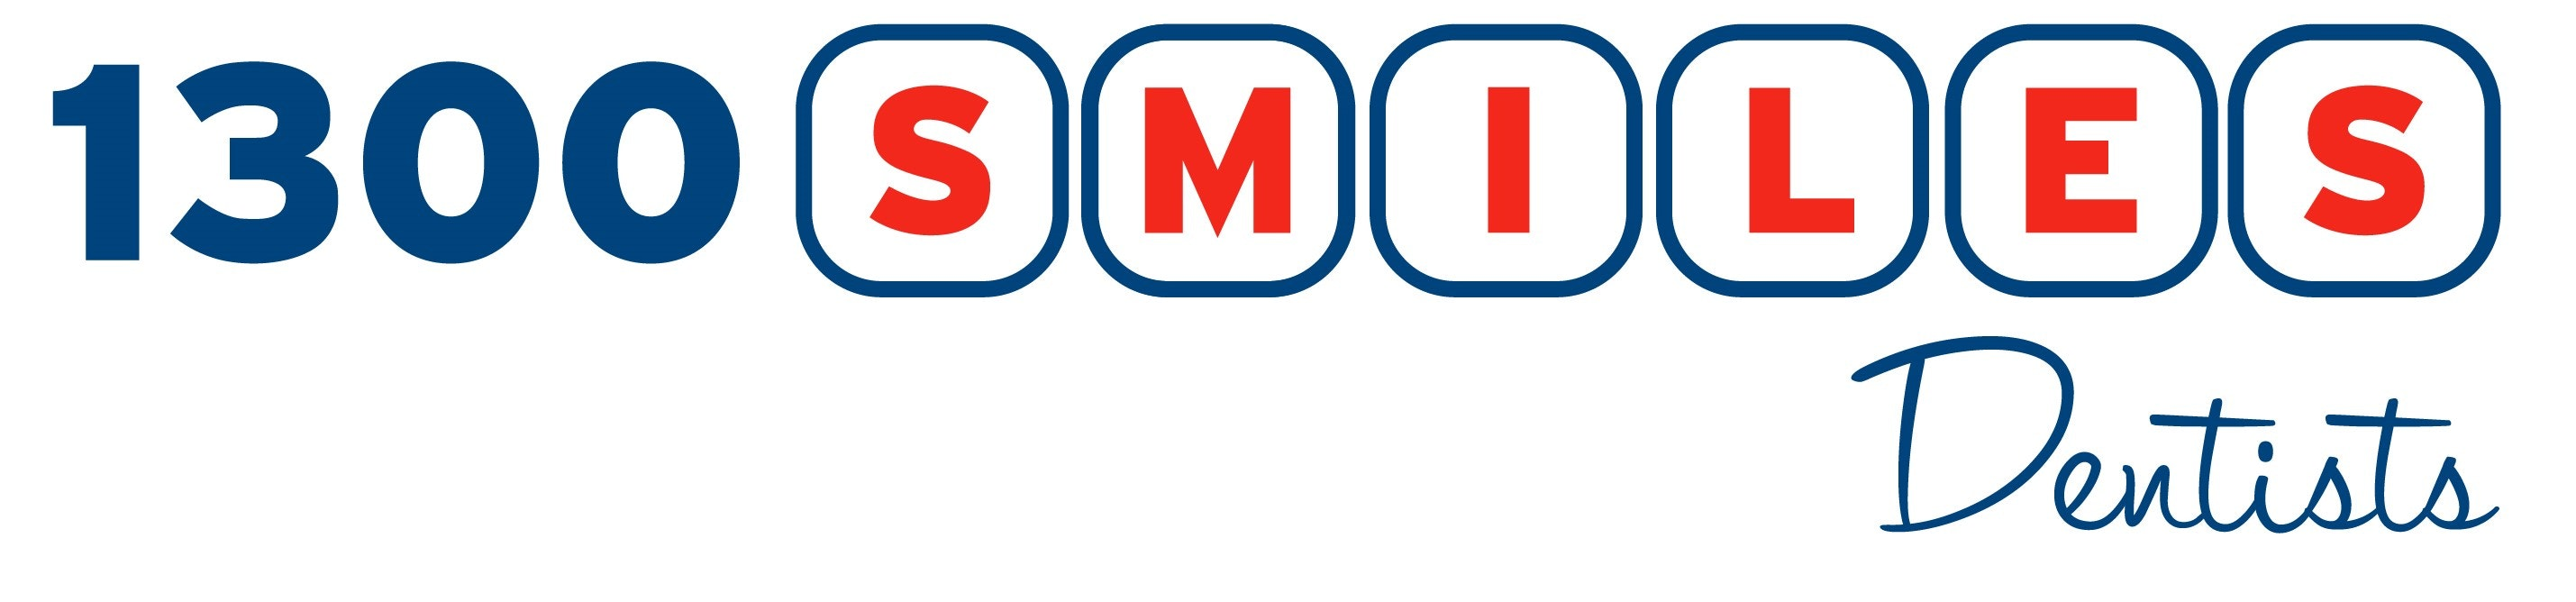 logo for 1300 Smiles - Carindale Dentists